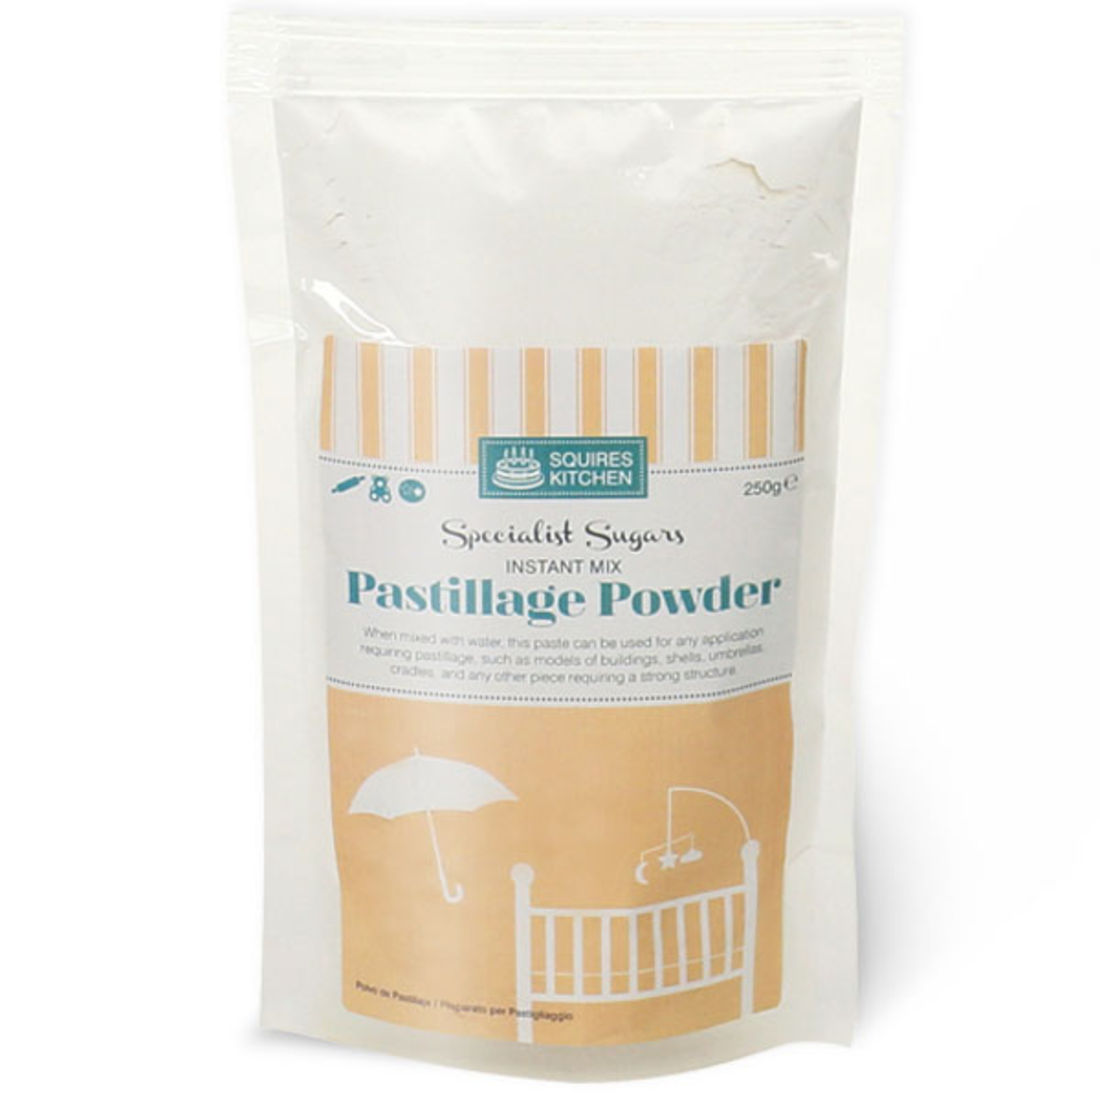 30858 SK Specialist Sugar Instant Mixes Pastillage Powder 250g